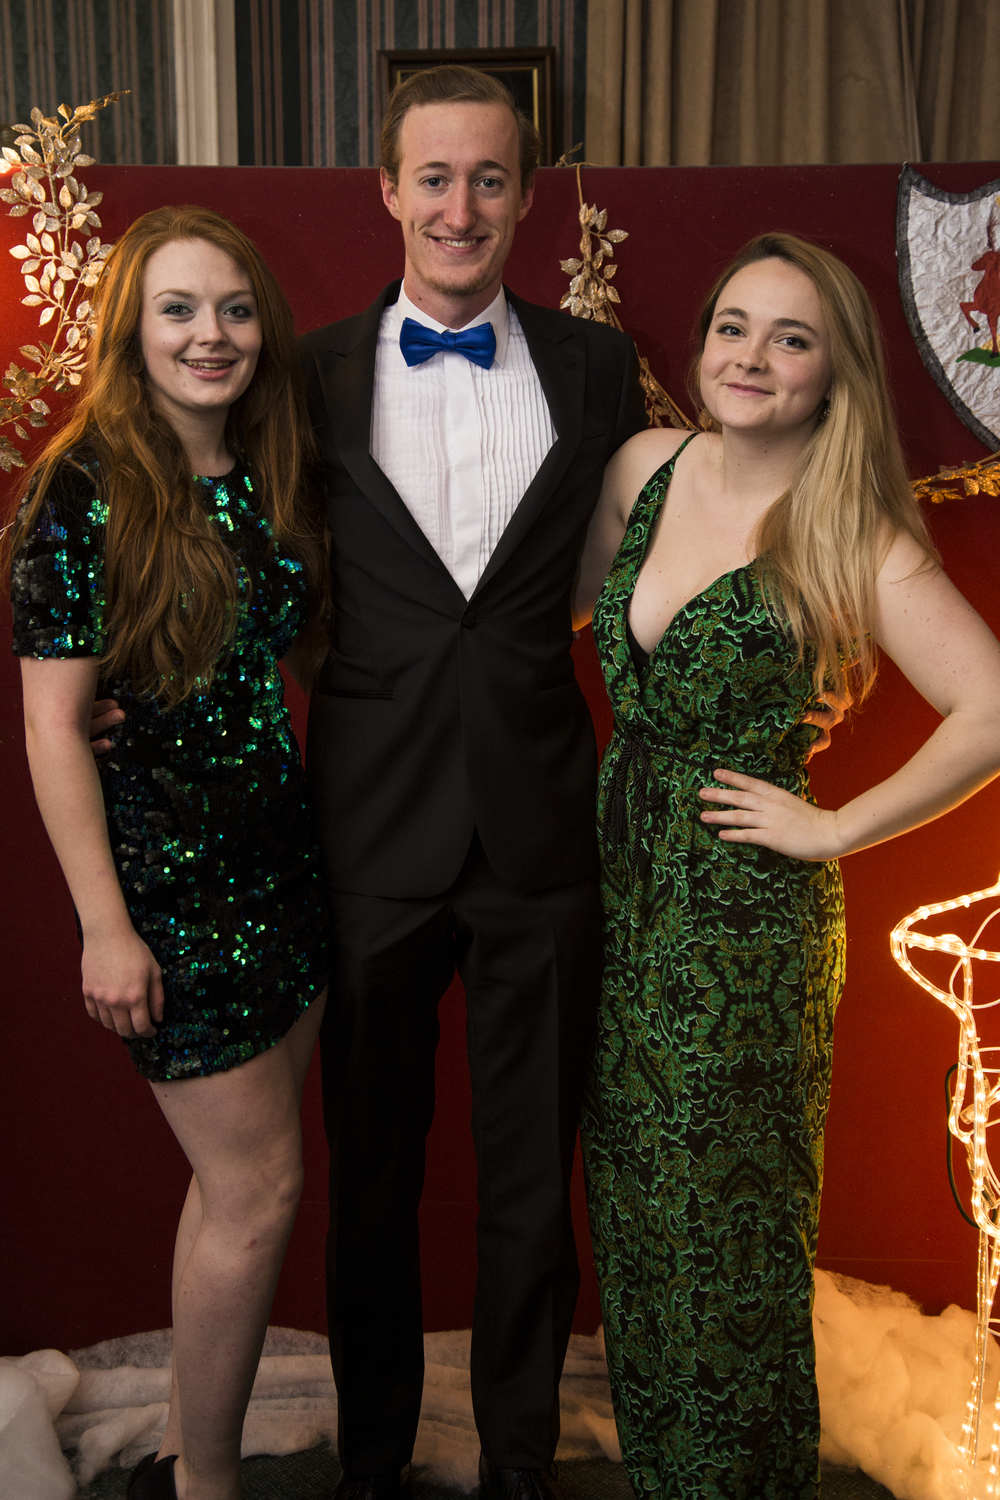 SAUS_winter_ball12121512.jpg